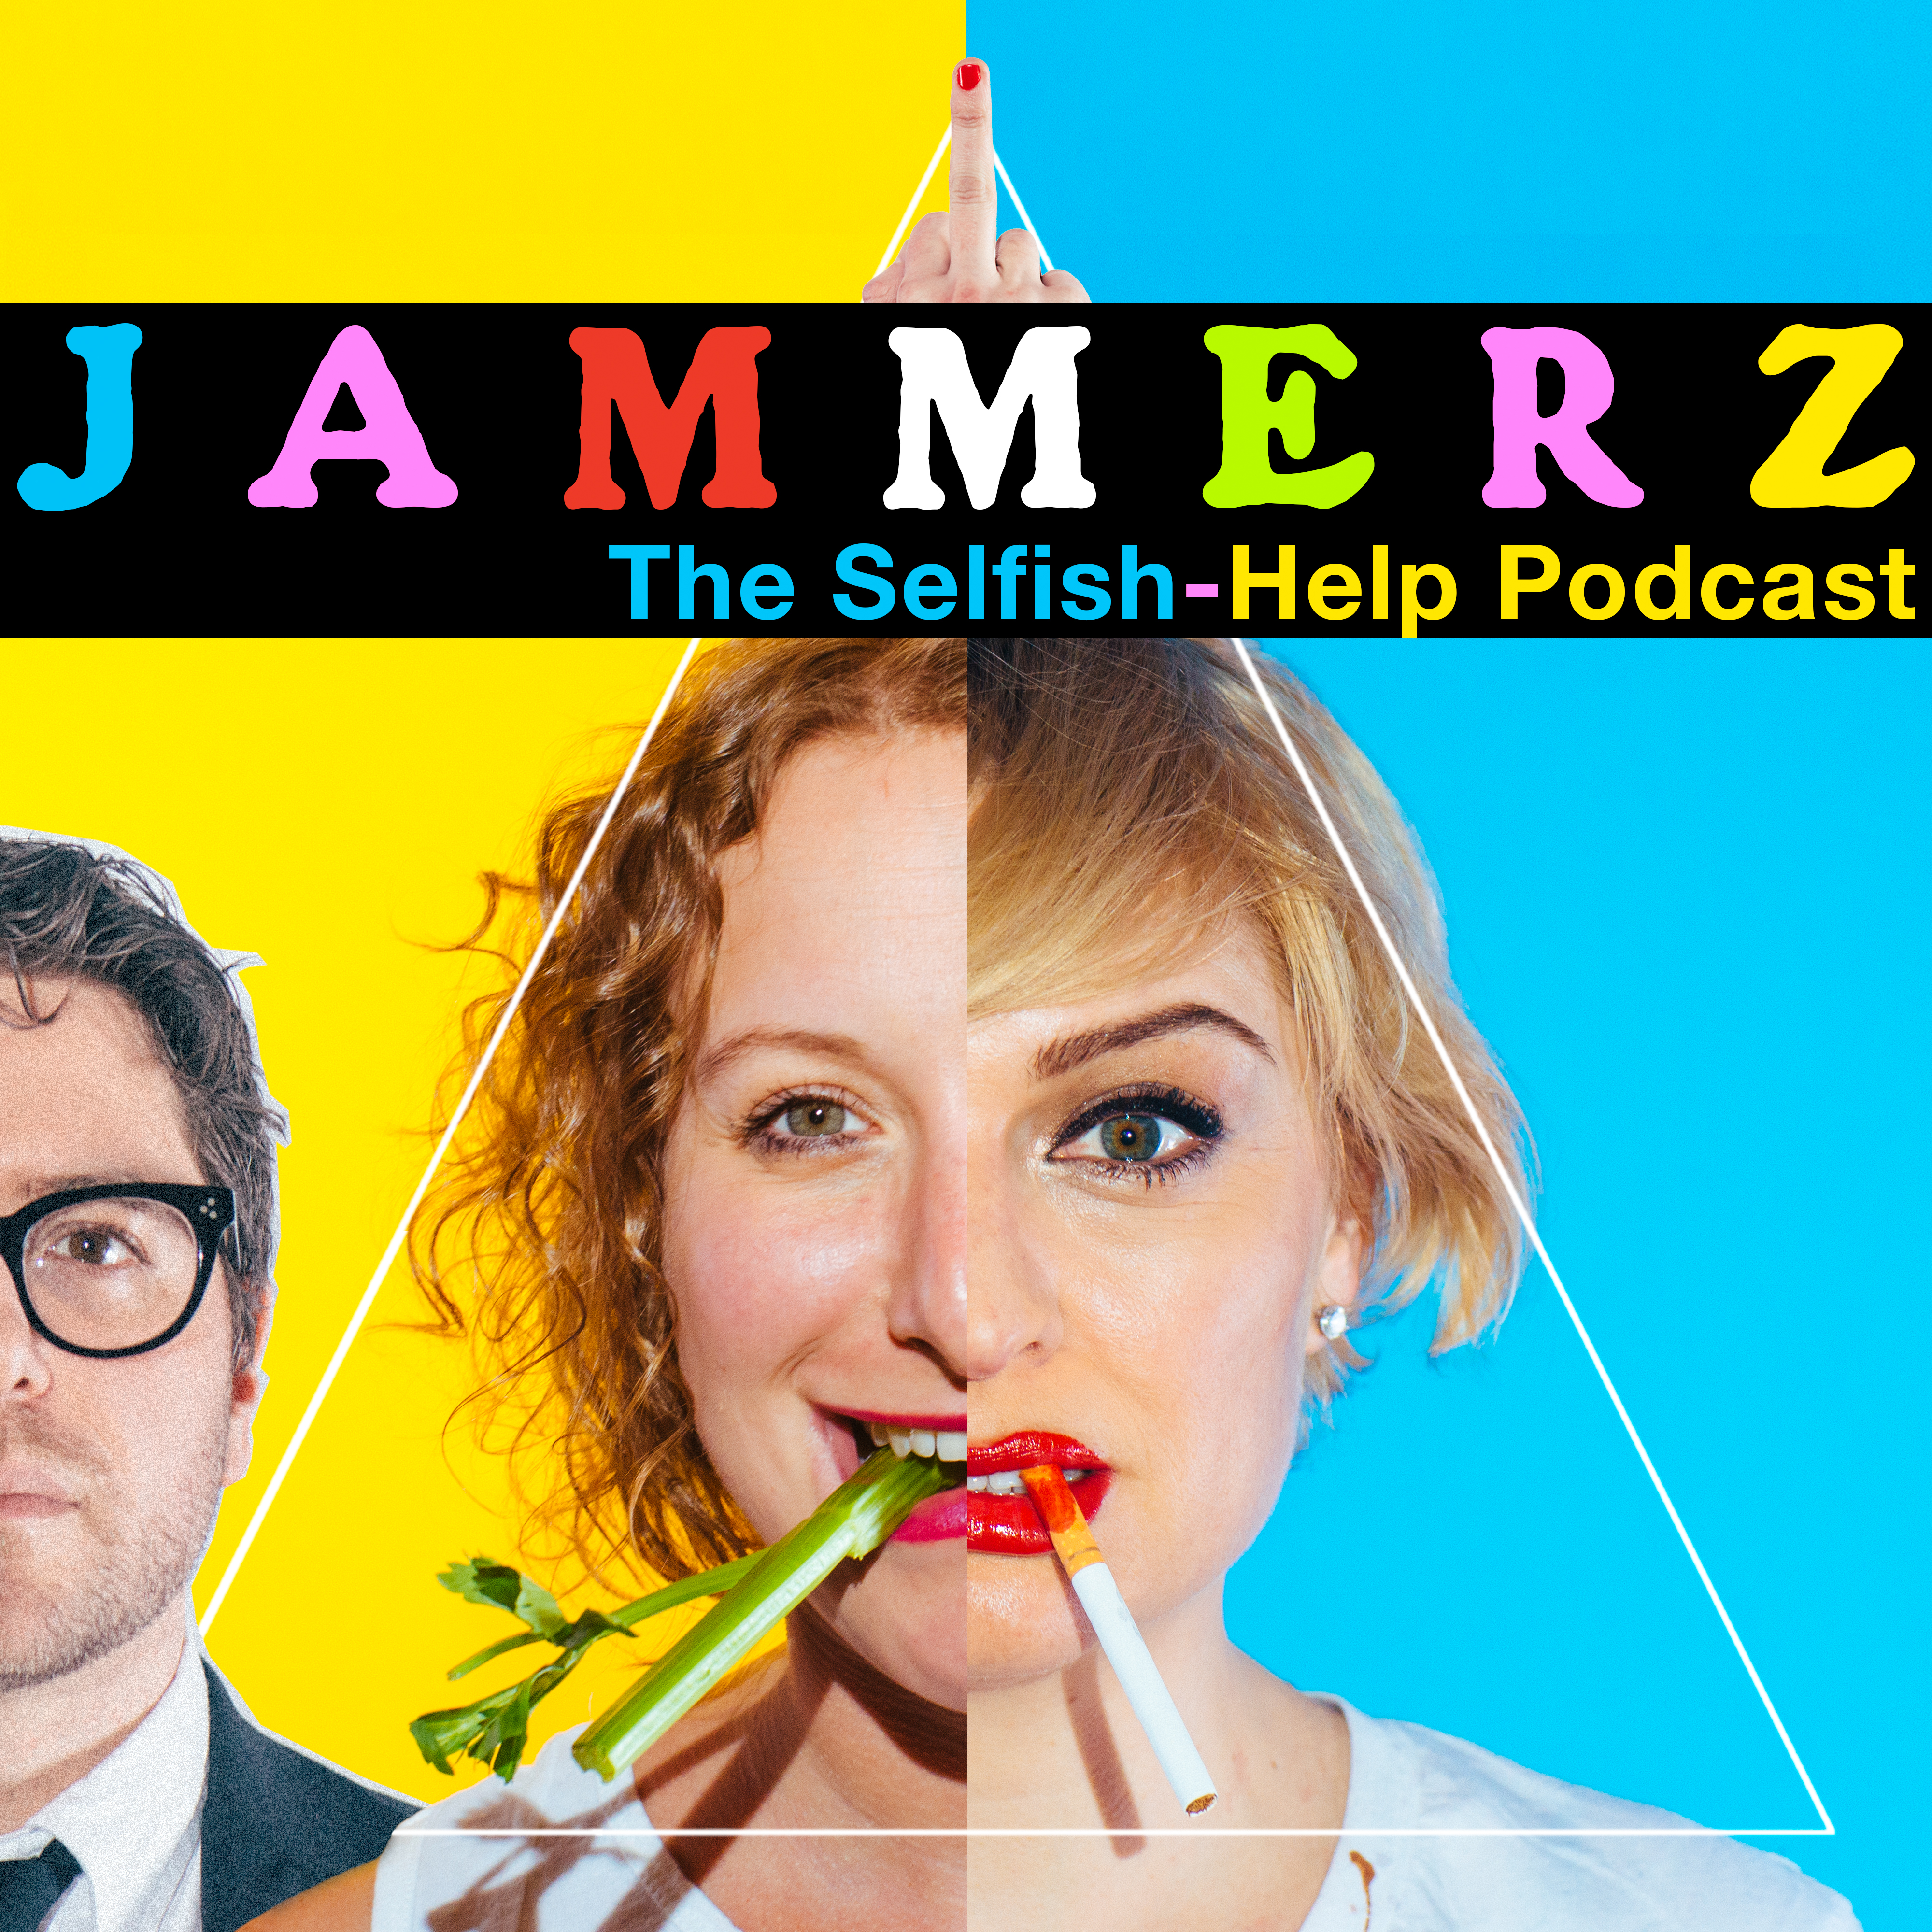 Jammerz Podcast Cover - Square